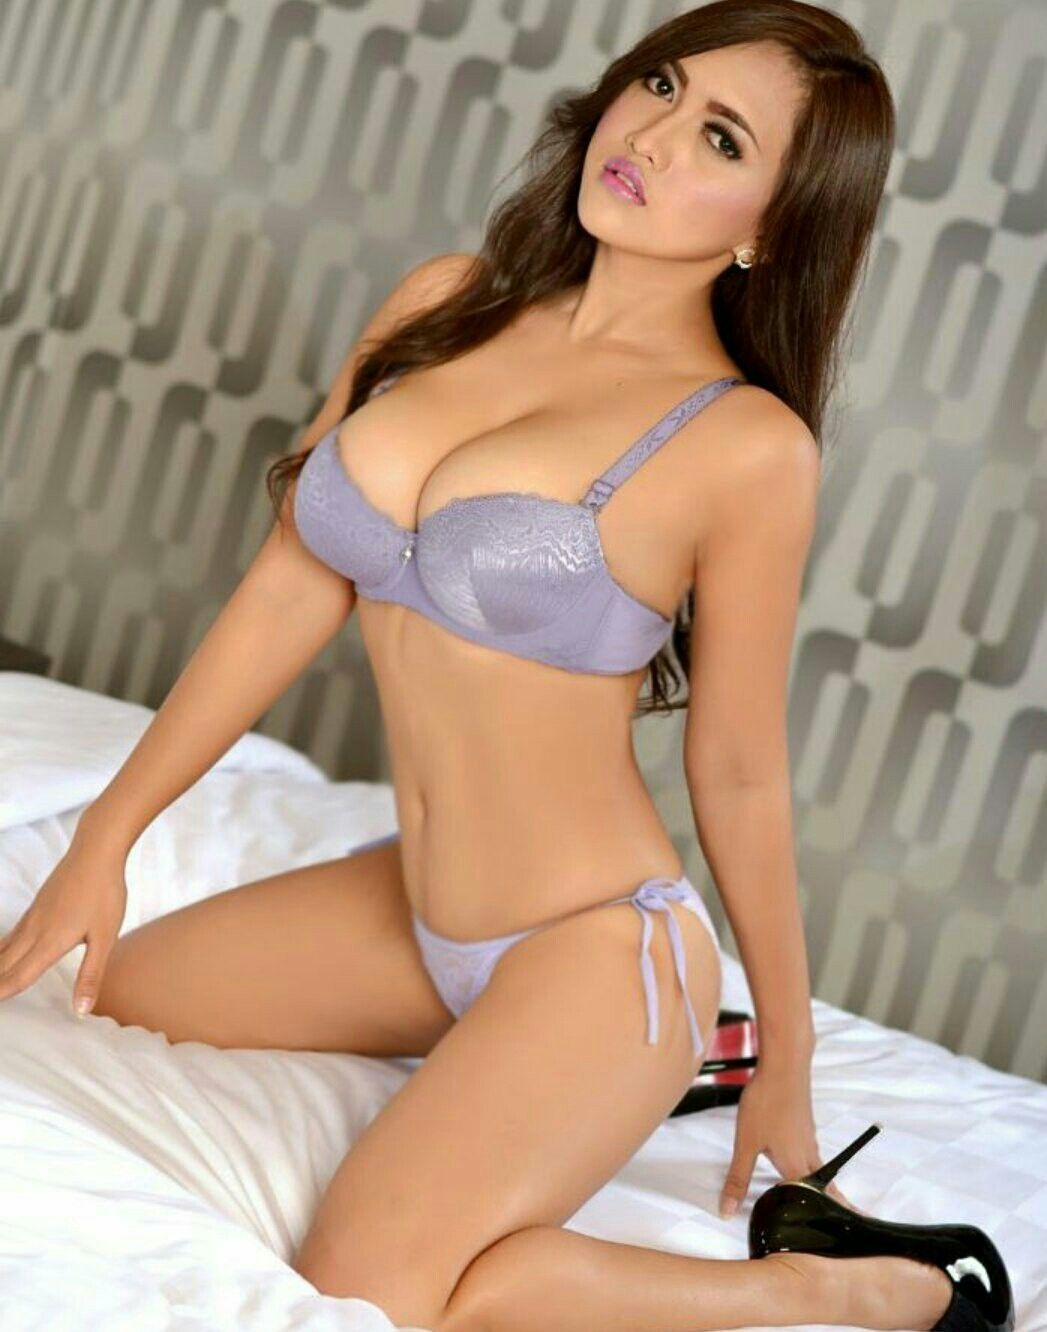 indonesia hot babes models